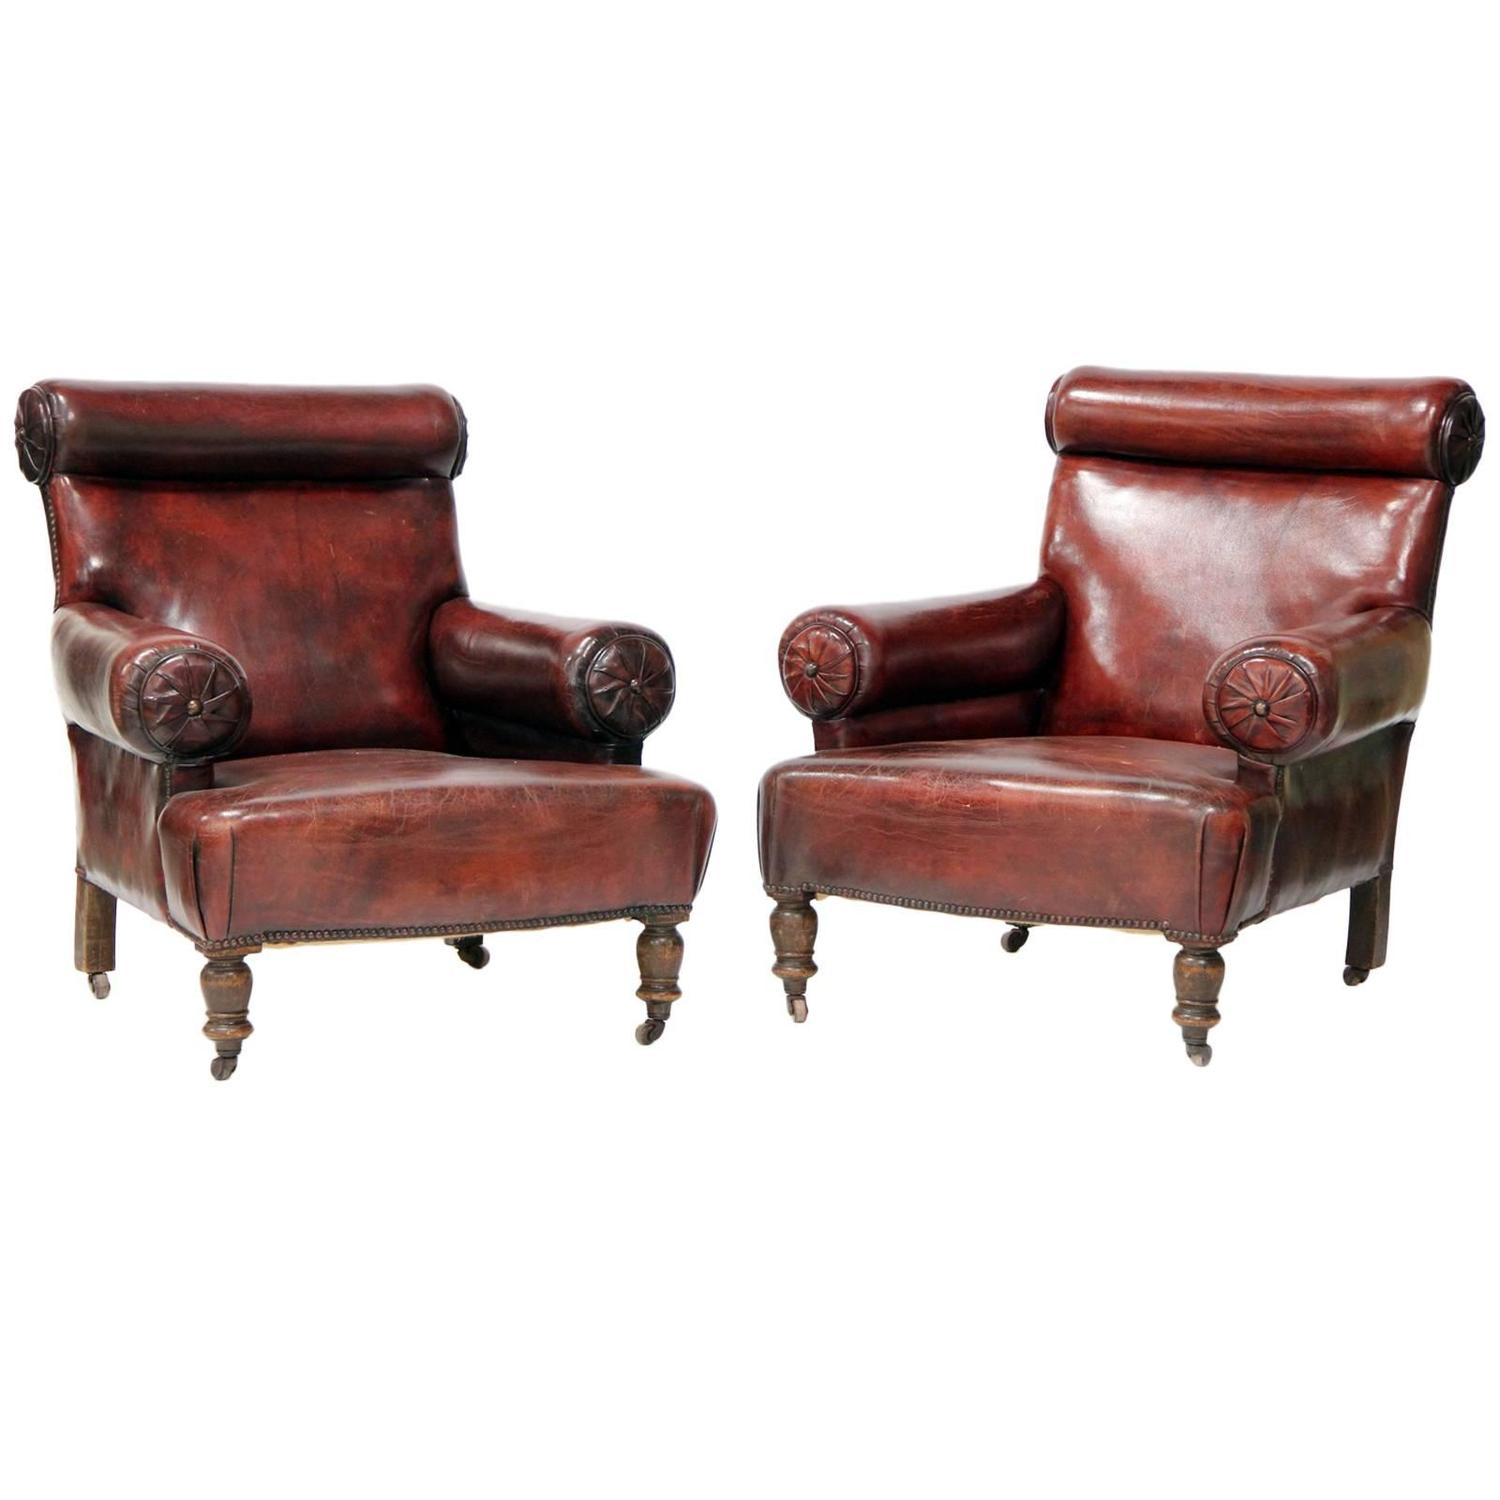 Pair Of Unique, Large Leather Club Chairs For Sale At 1stdibs